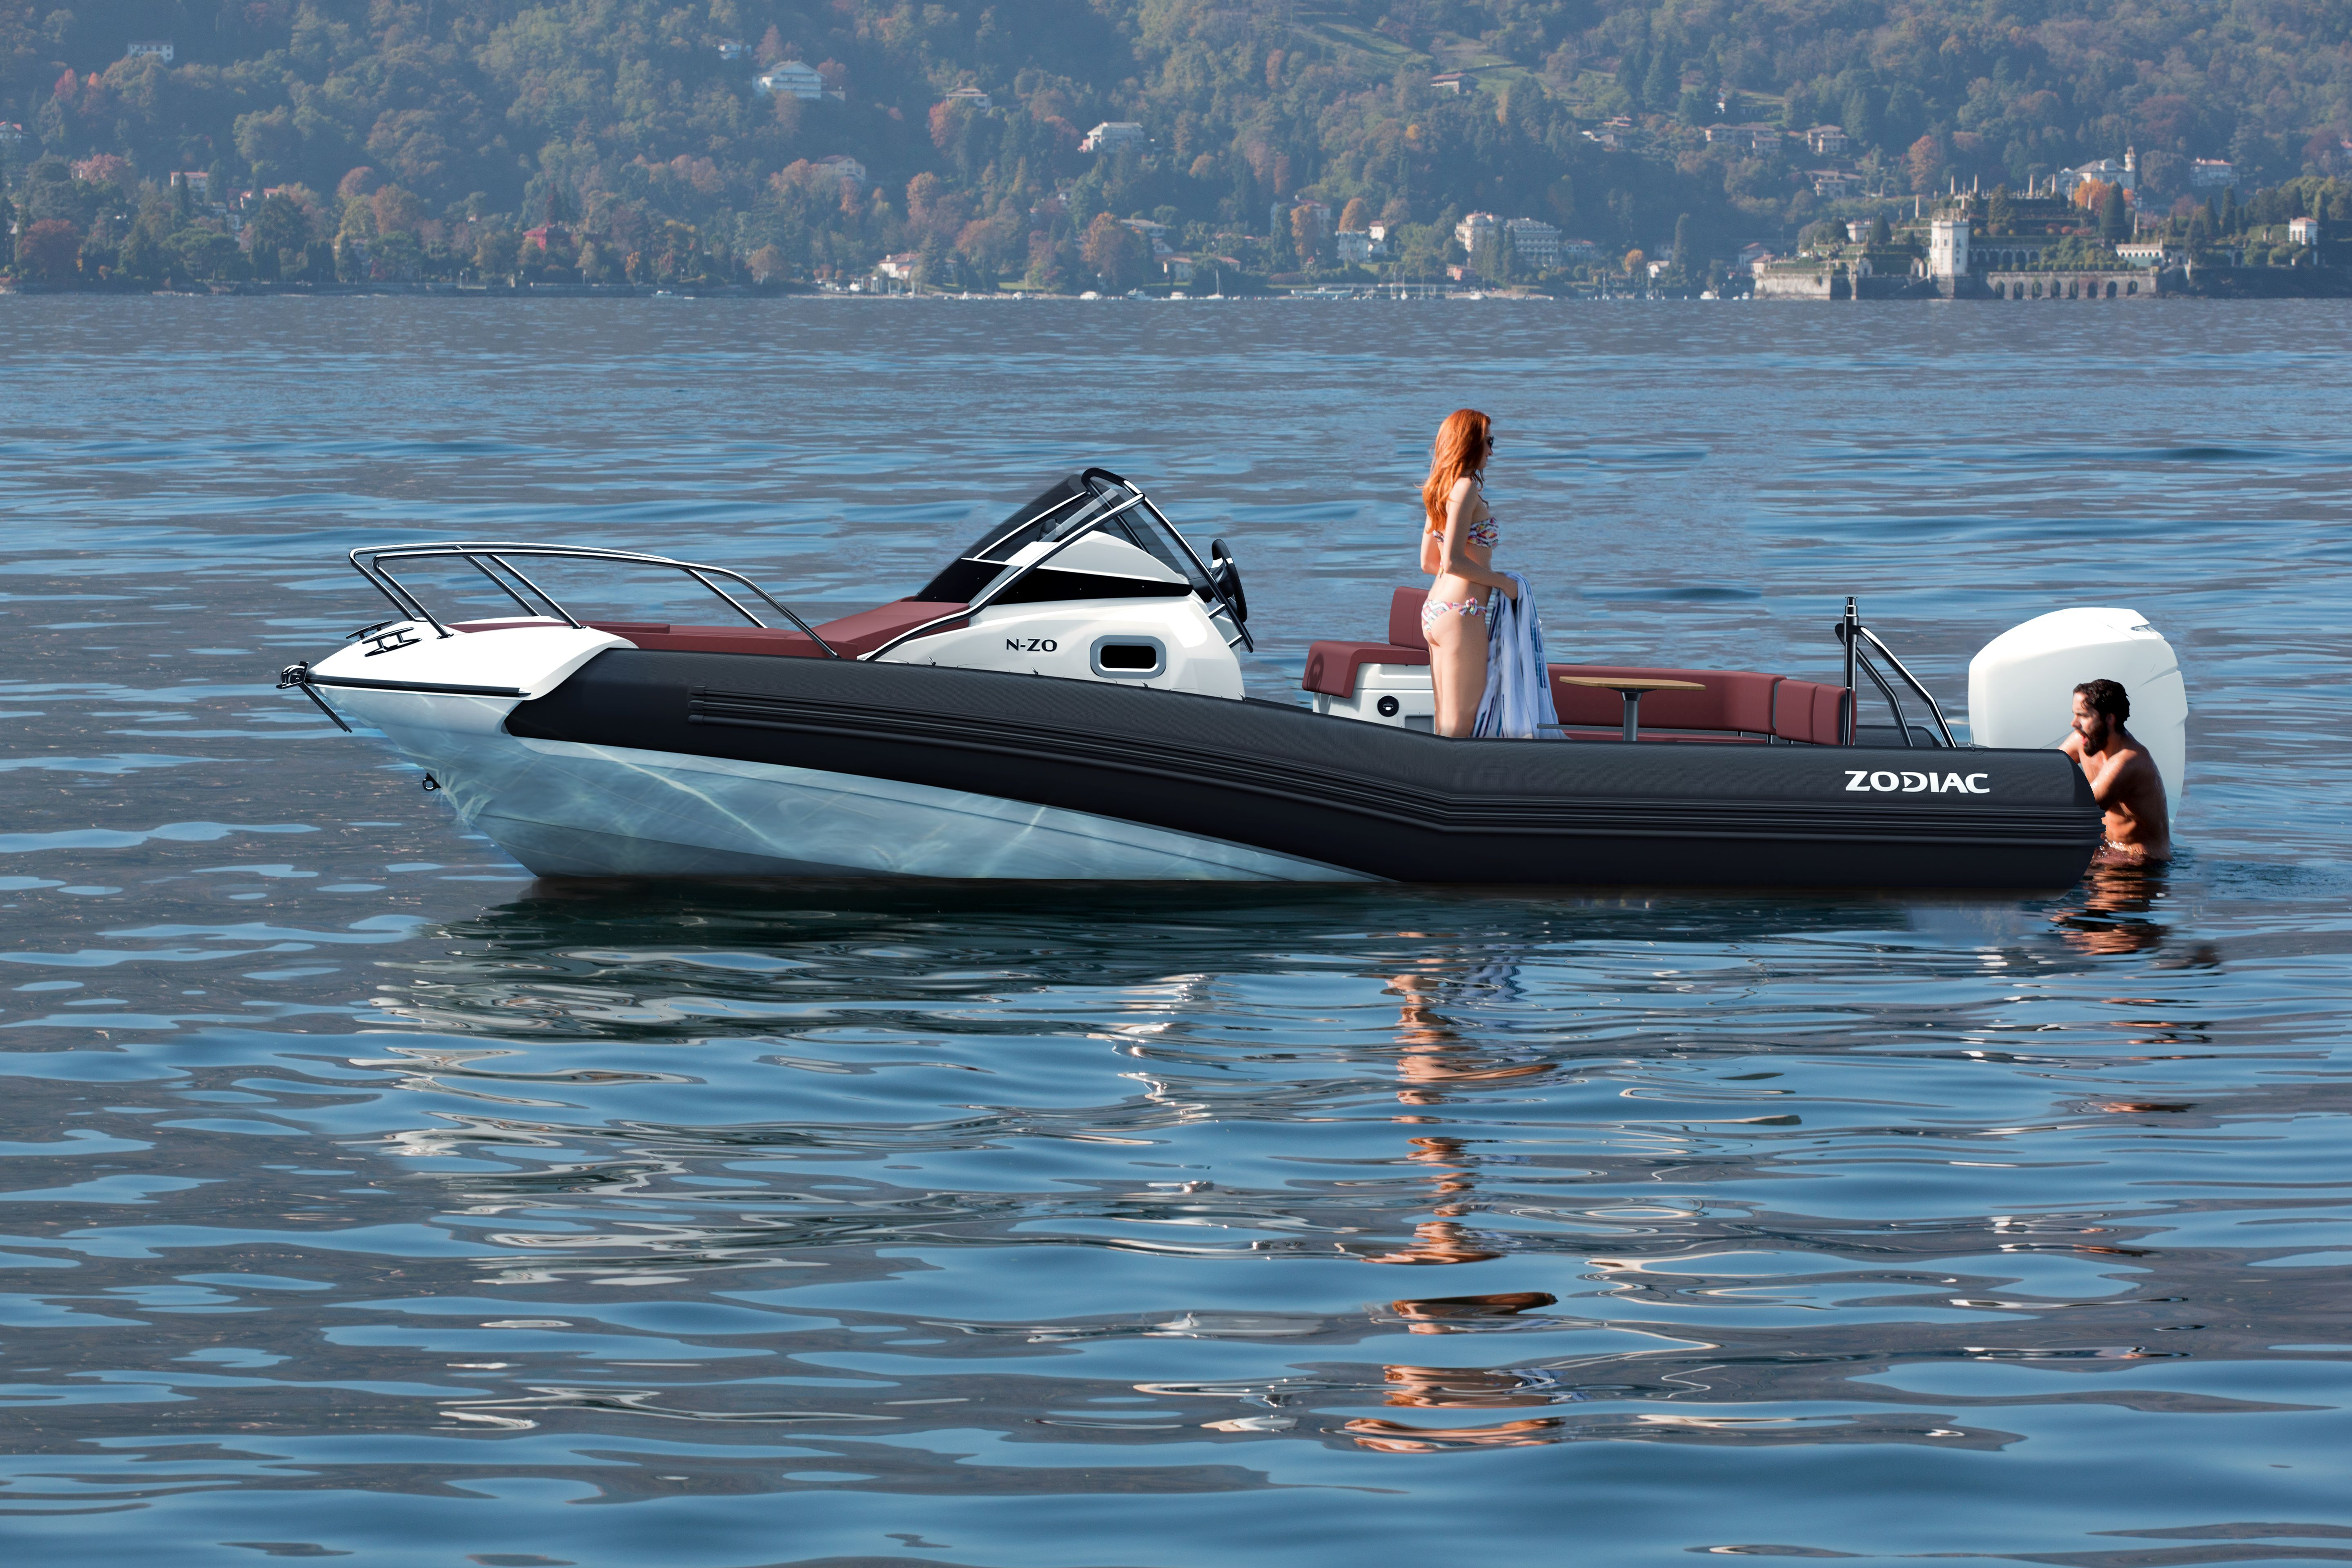 Zodiac nzo 700 cabin RIB boat floating in water with passengers